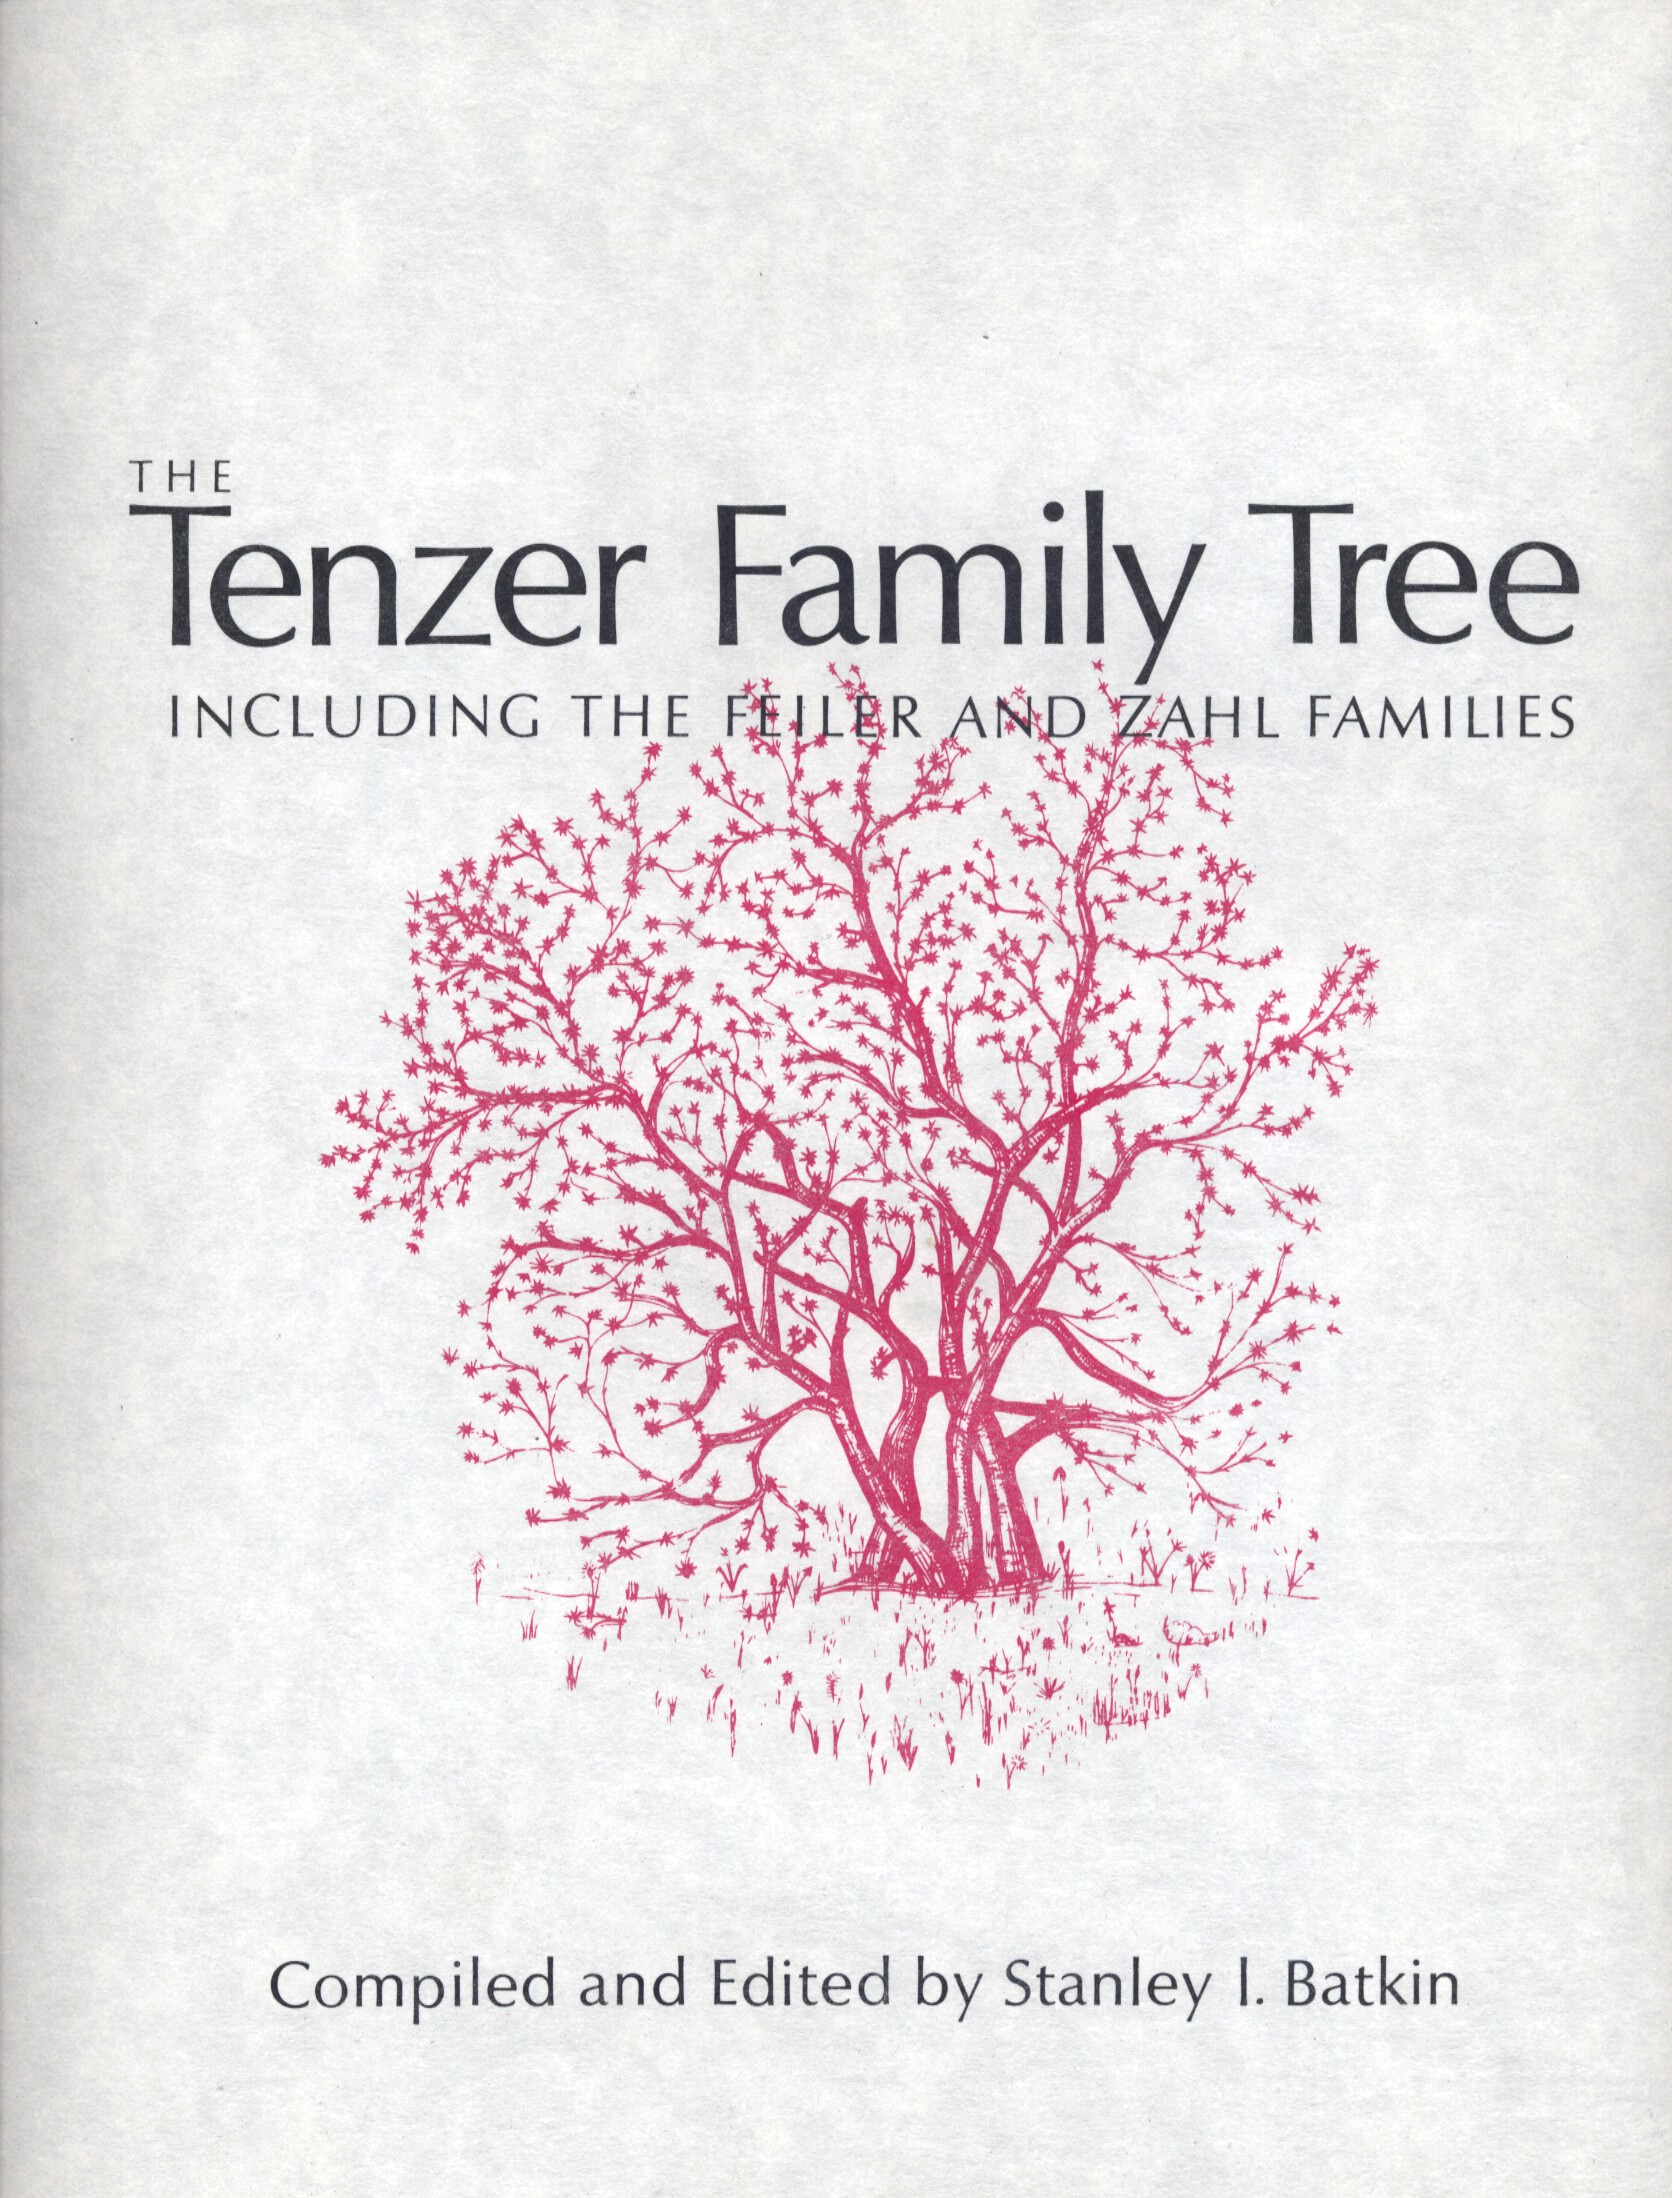 Onezer search image jack - 1 Tenzer Family Tree Cover